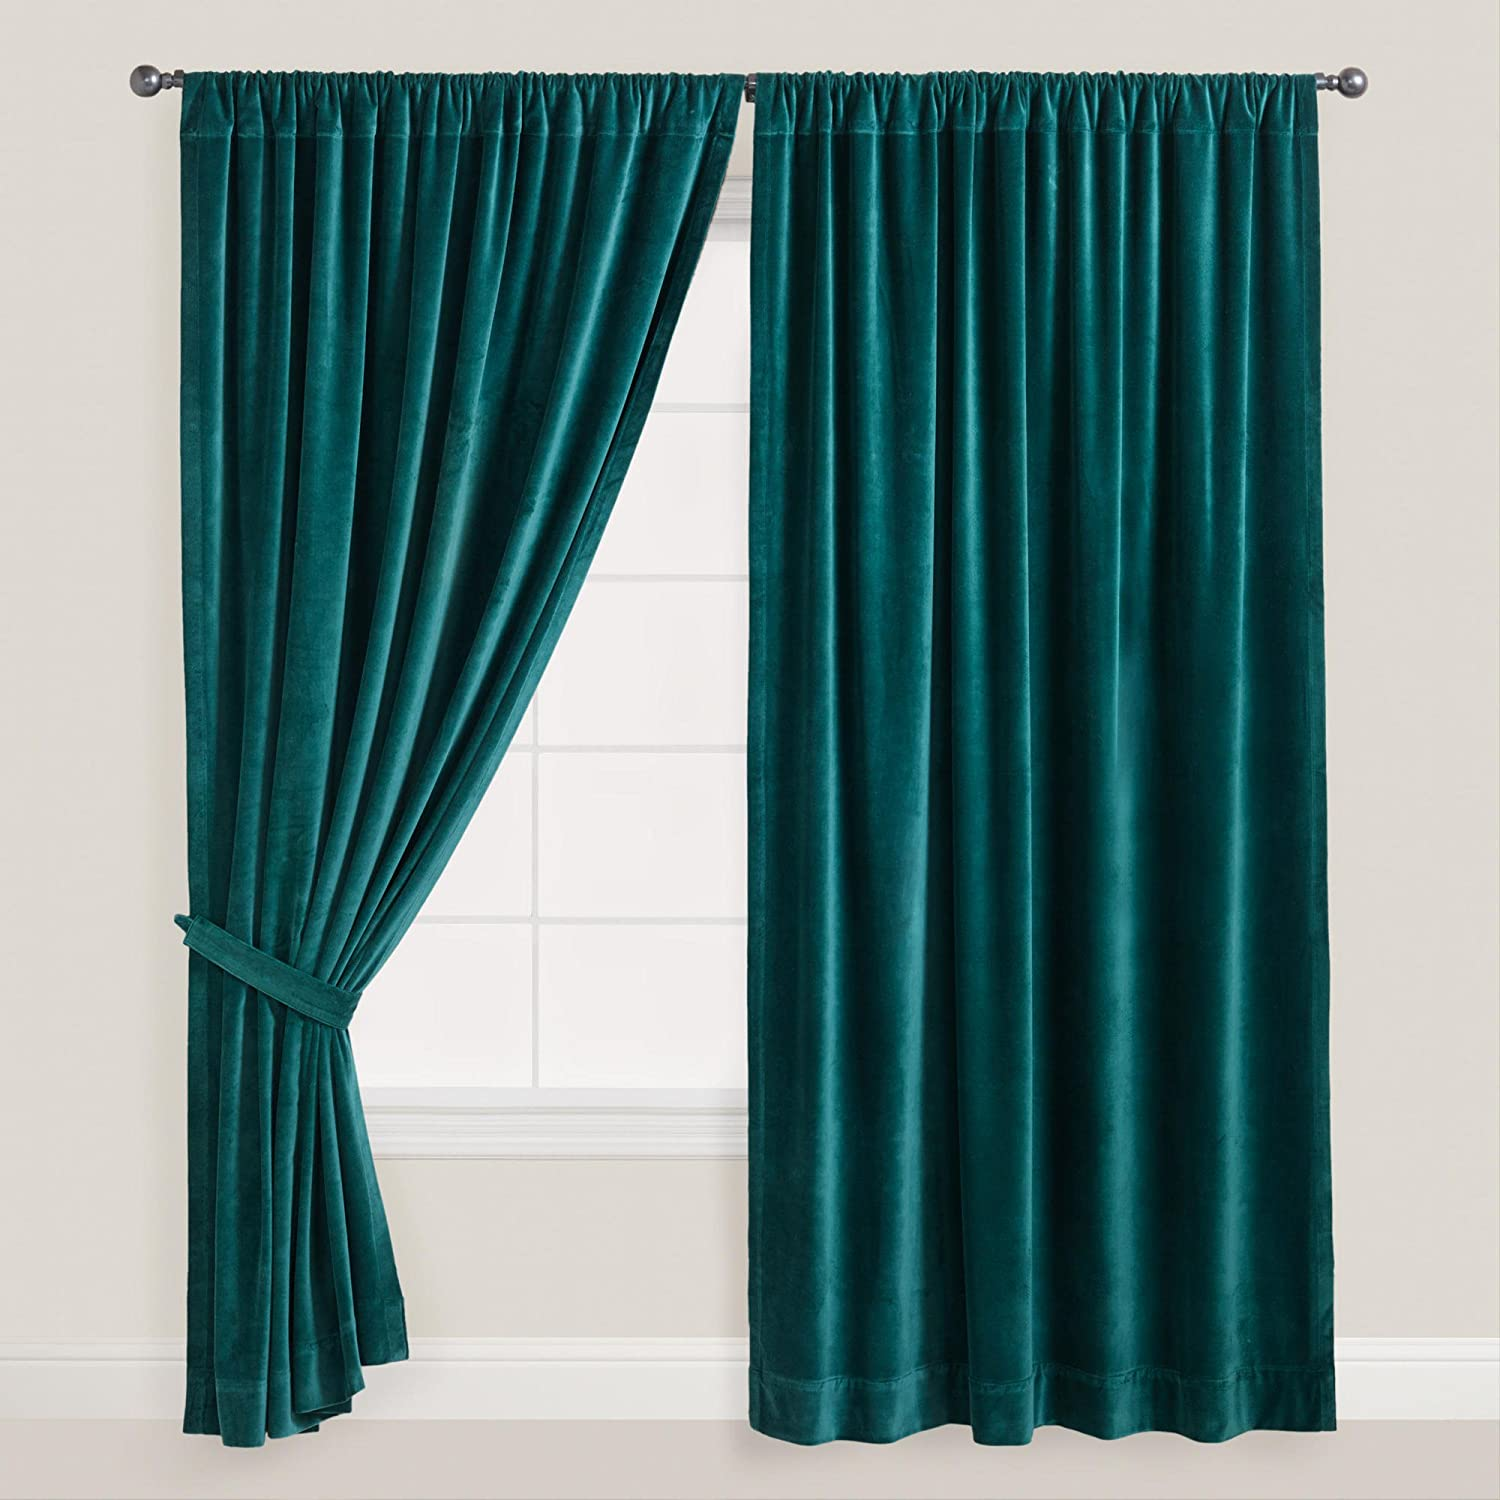 Design Velvet Curtains amazon com teal thick velvet curtains absolute blackout 52w by 96 h l 2